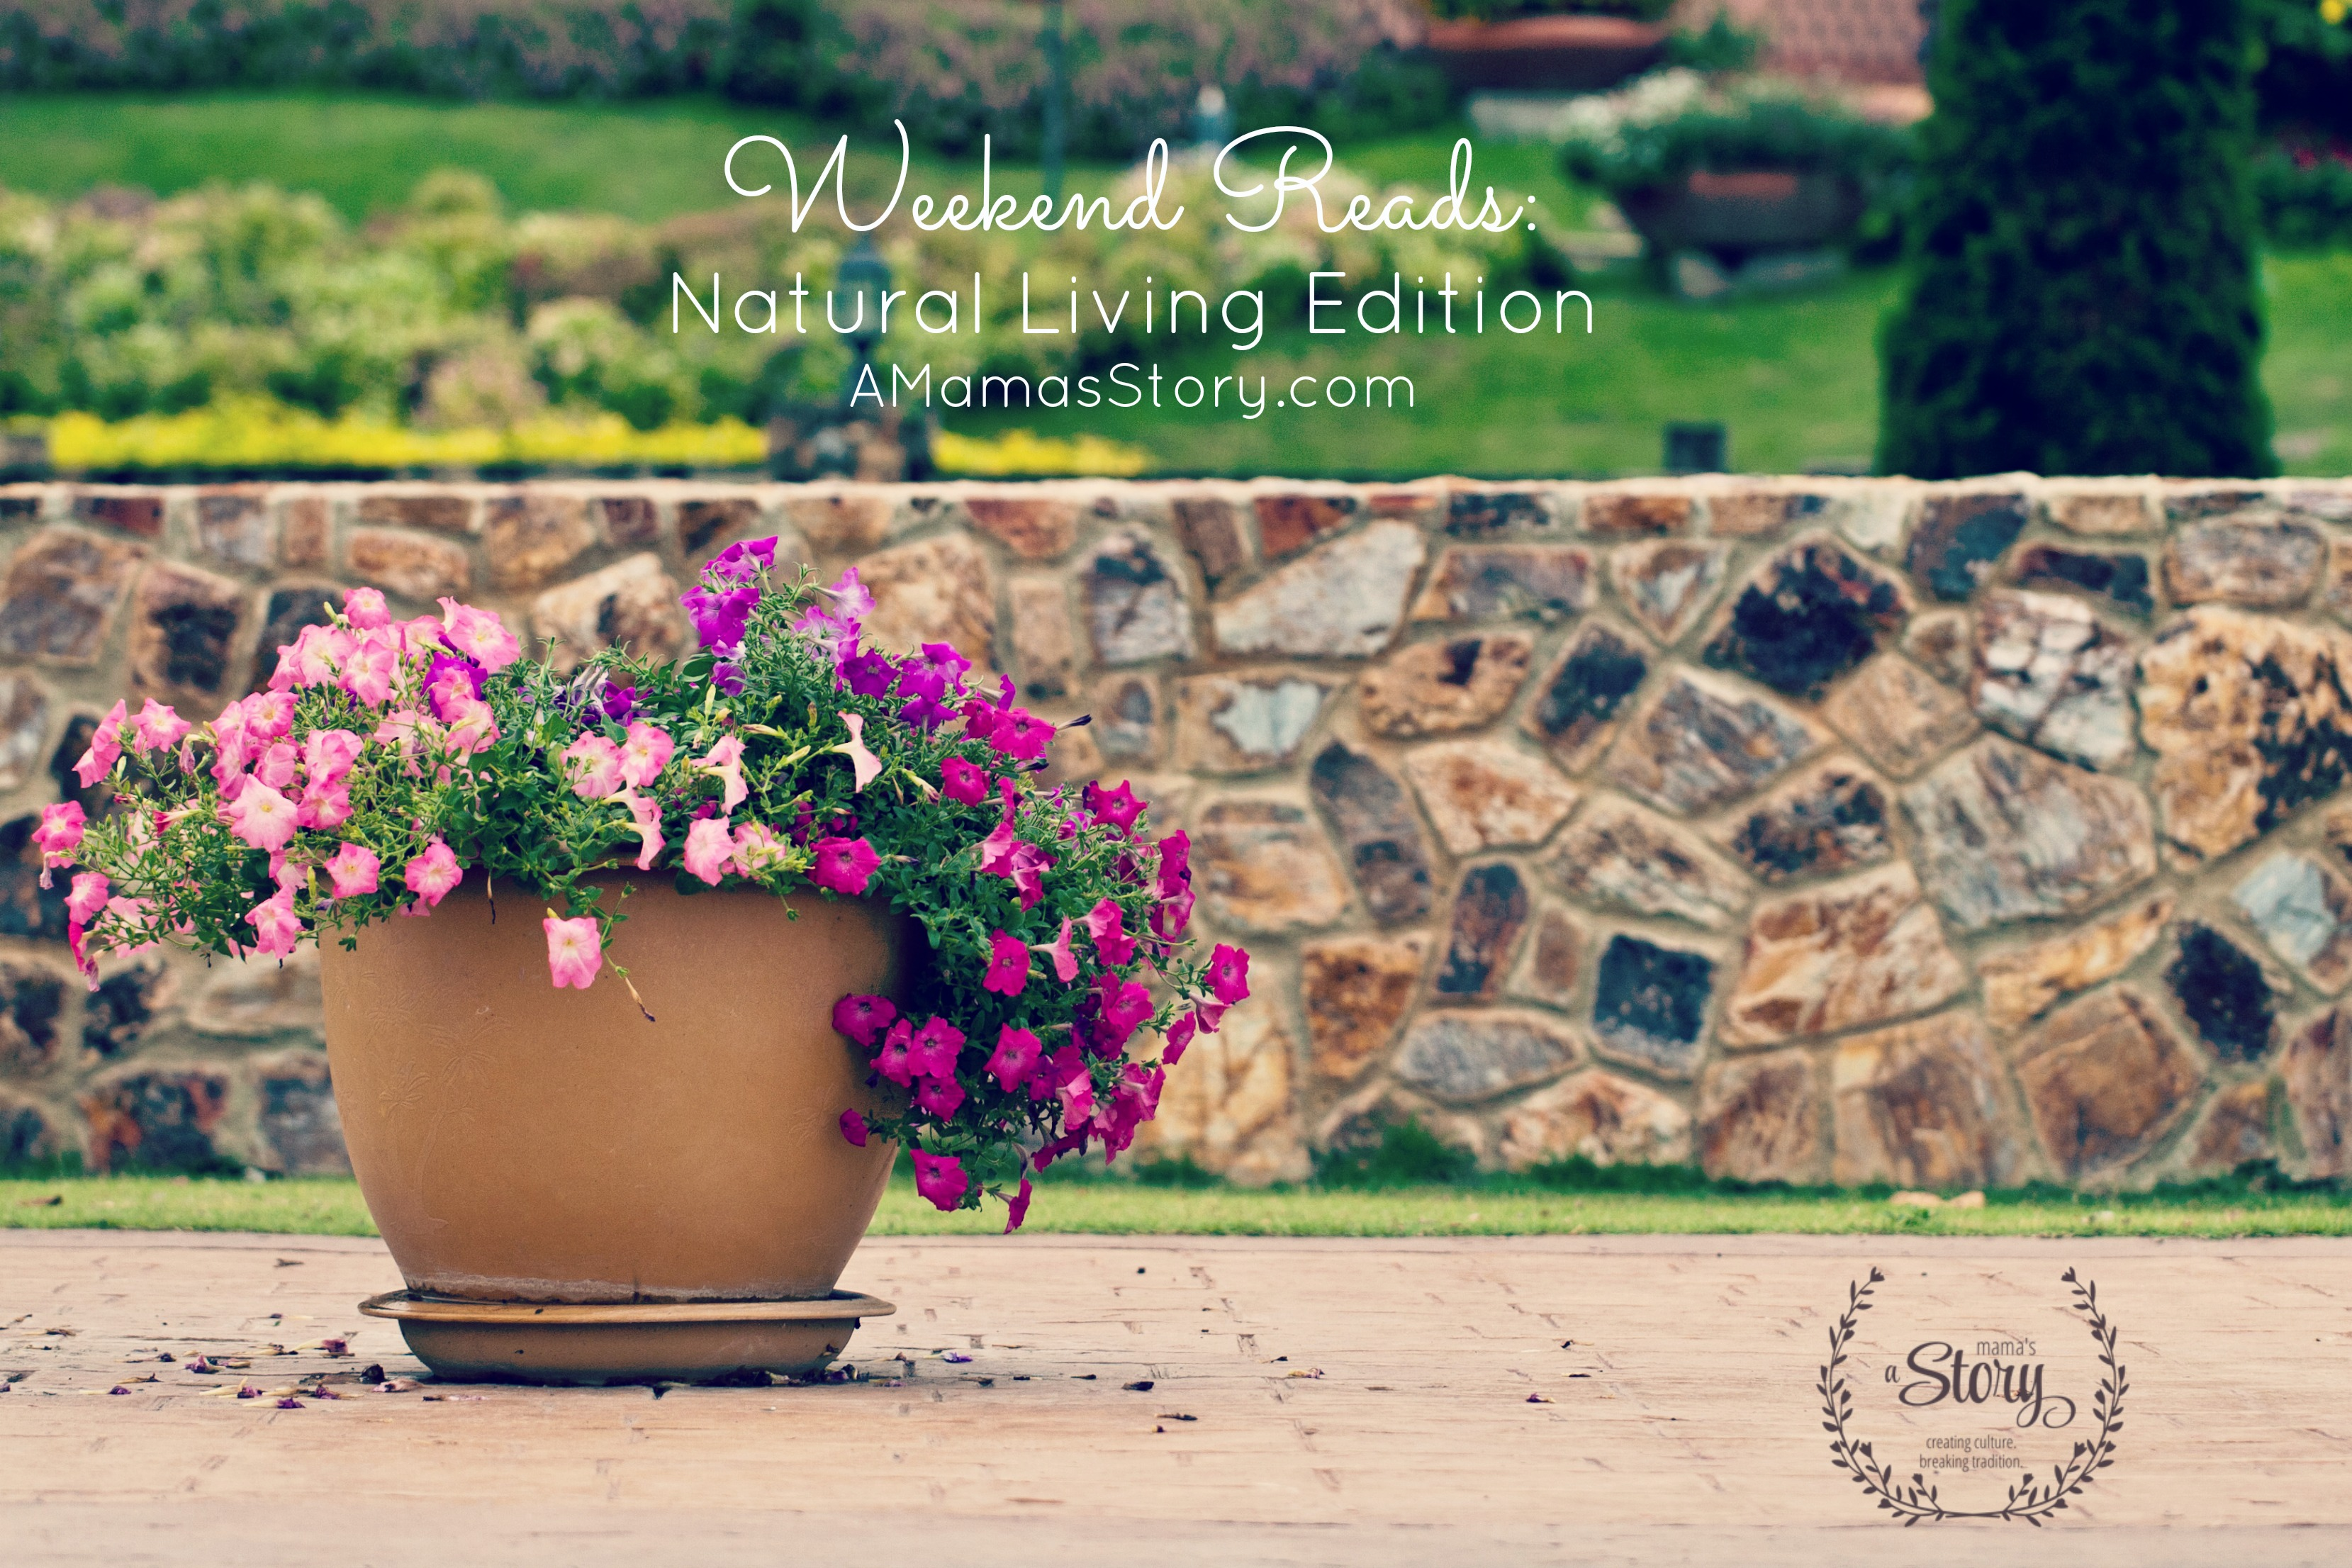 Weekend Reads: Natural Living Edition